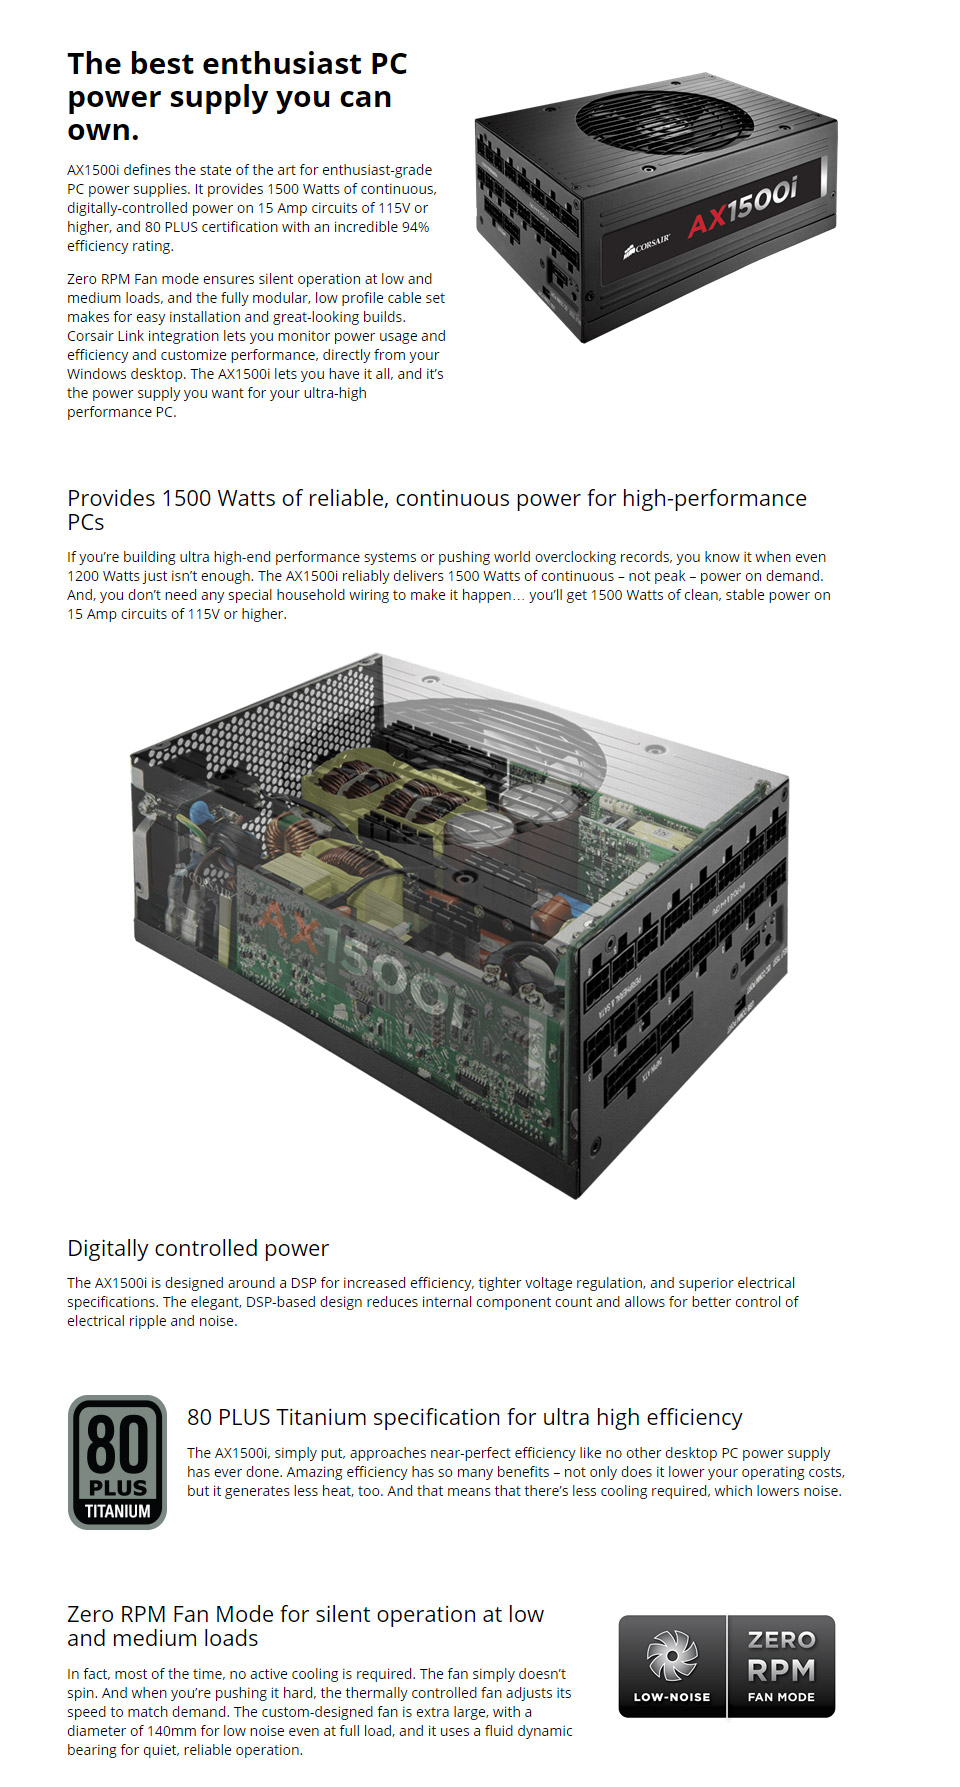 Corsair Ax1500i Digital Titanium Modular 1500w Power Supply Cp Ampcircuits Makes For Easy Installation And Great Looking Builds Link Integration Lets You Monitor Usage Efficiency Customise Performance